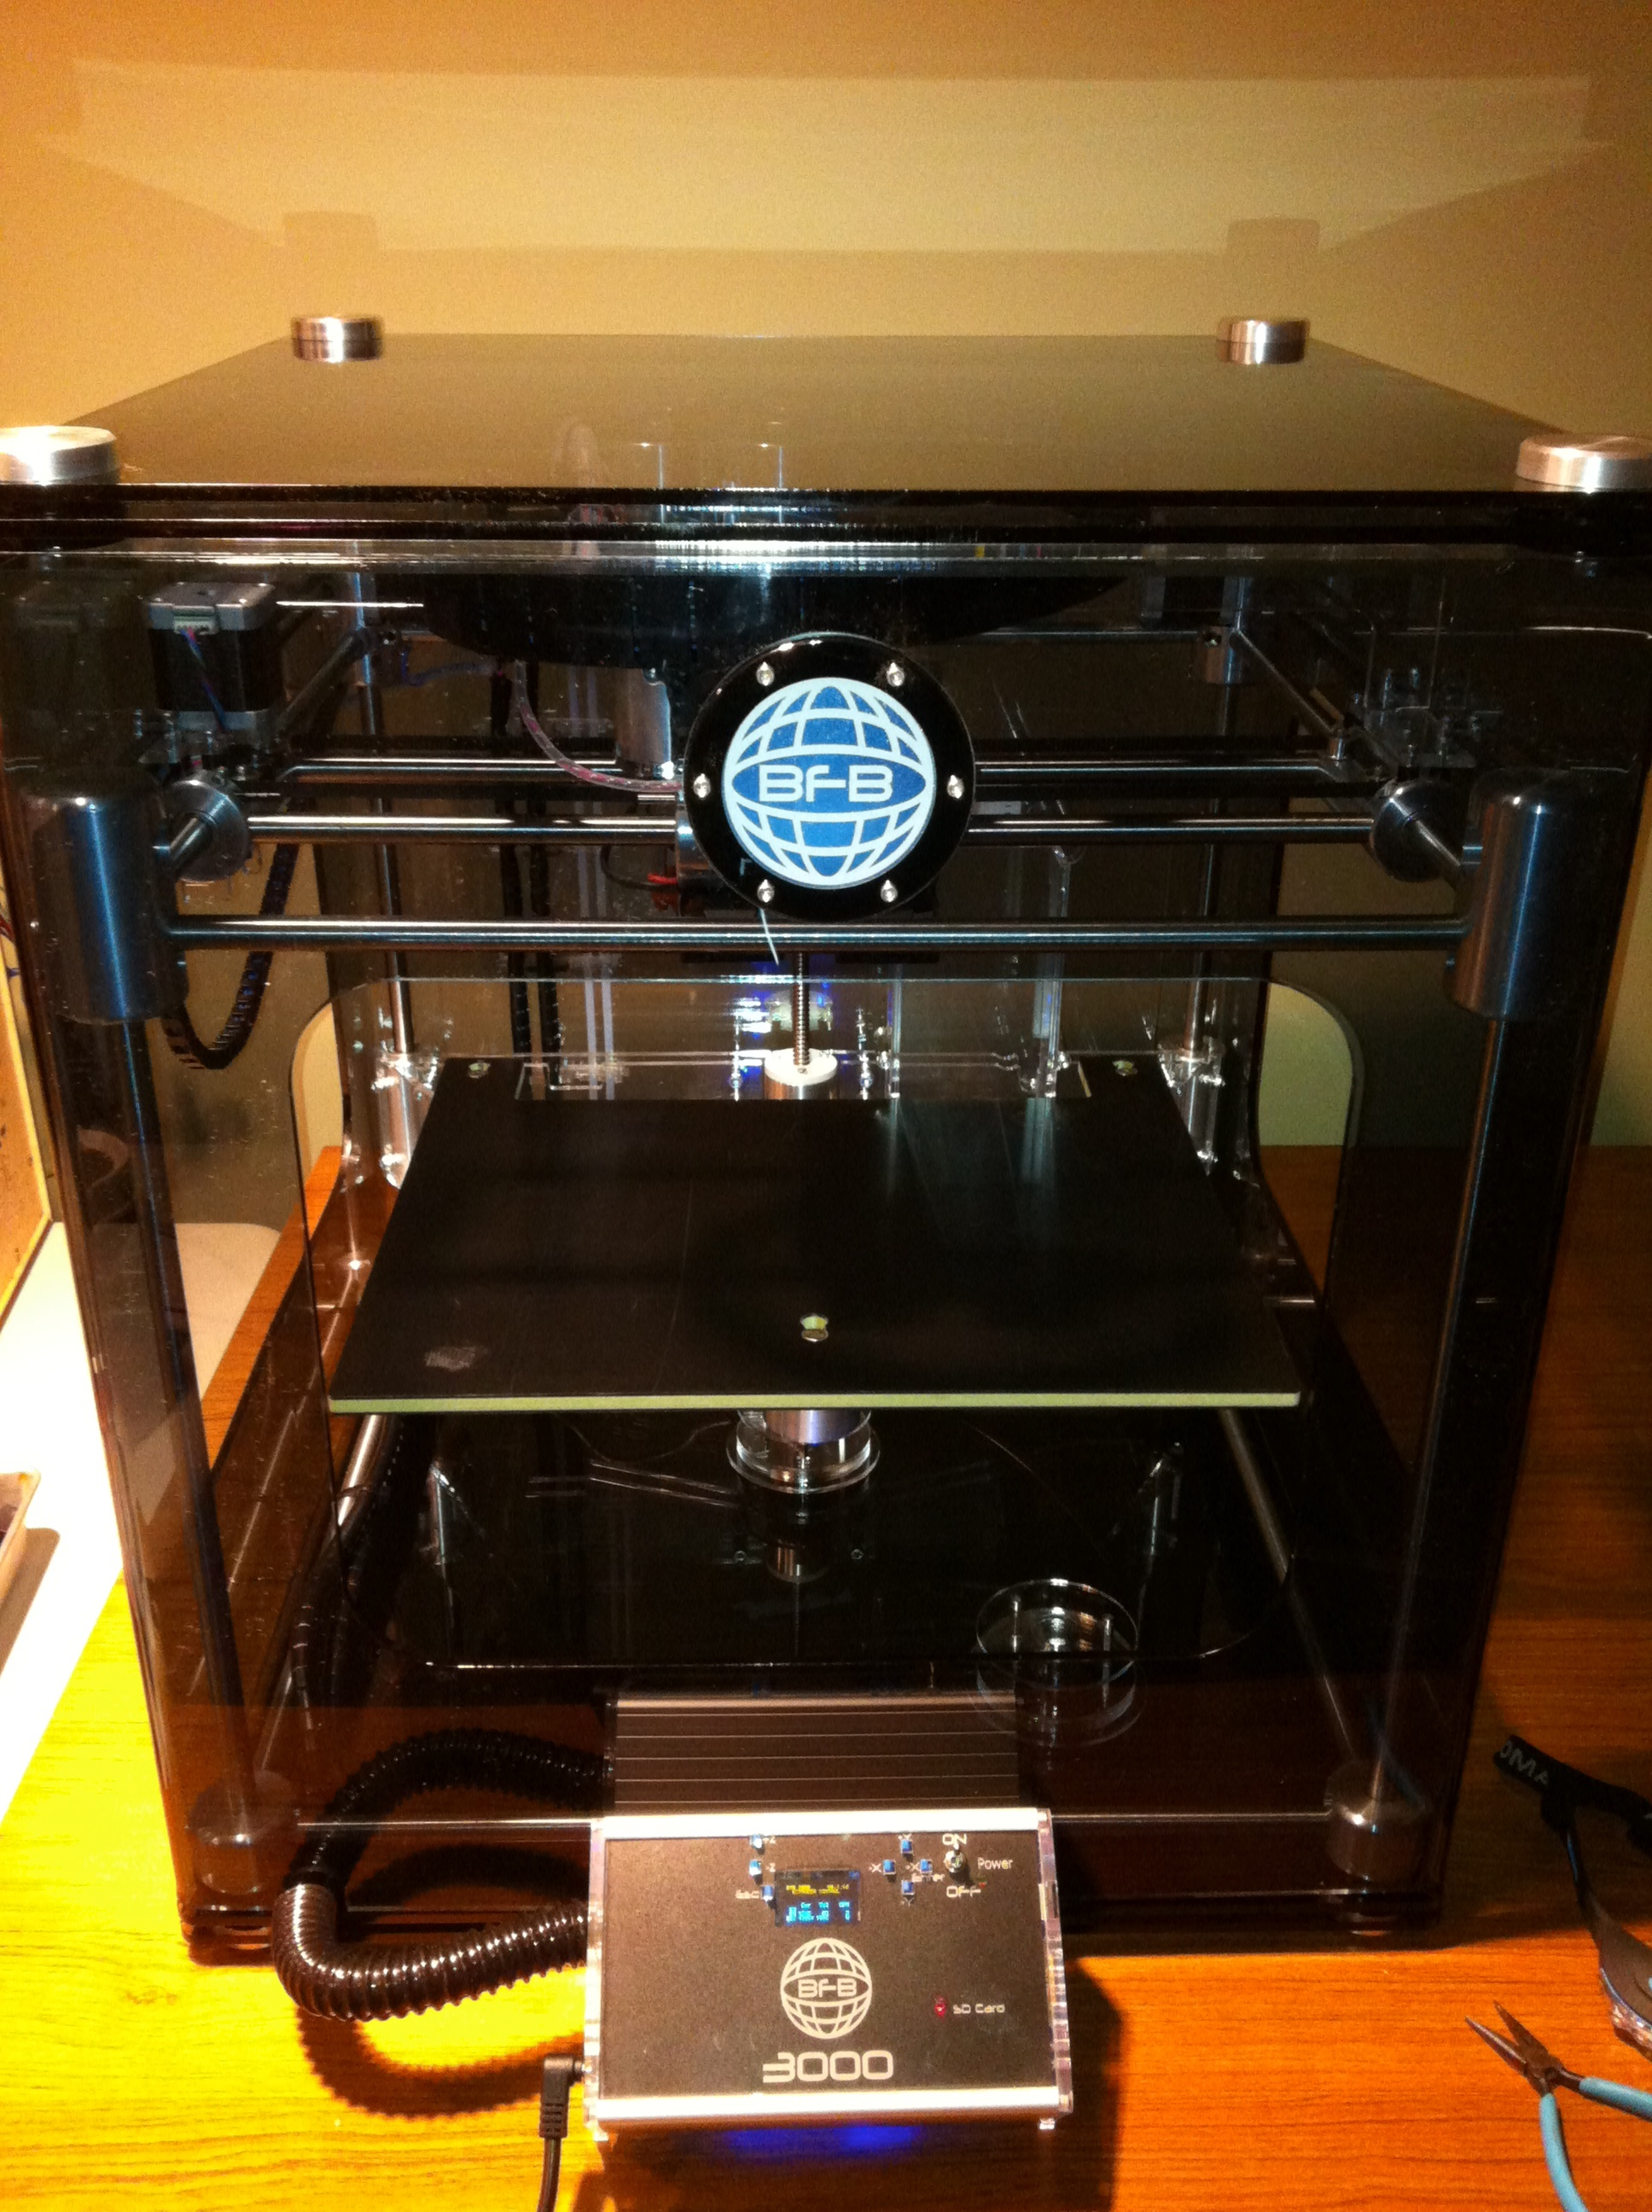 The Trouble With 3D Printers